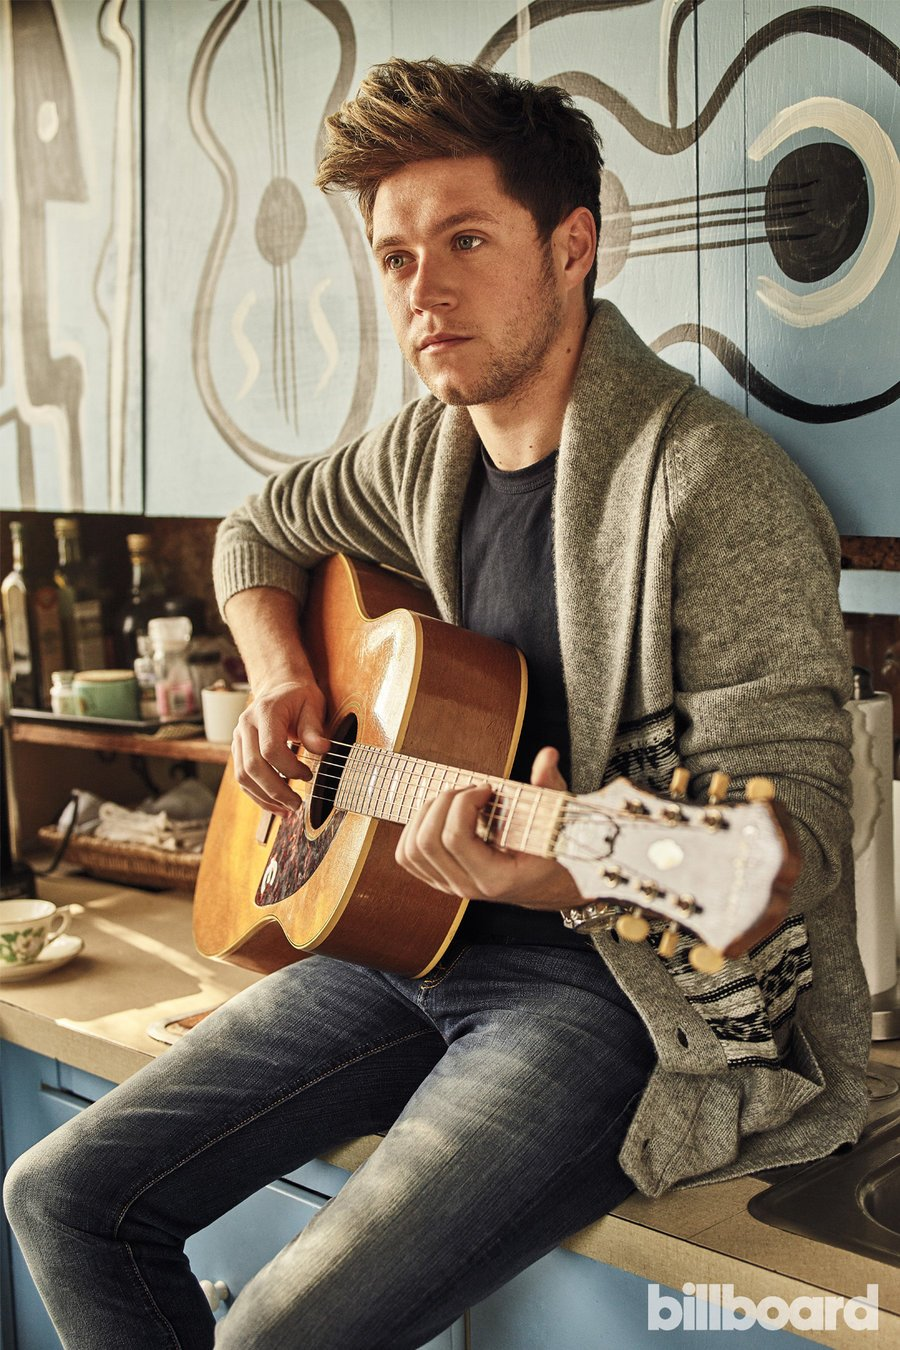 Happy Birthday to Niall Horan who turns 24 today!